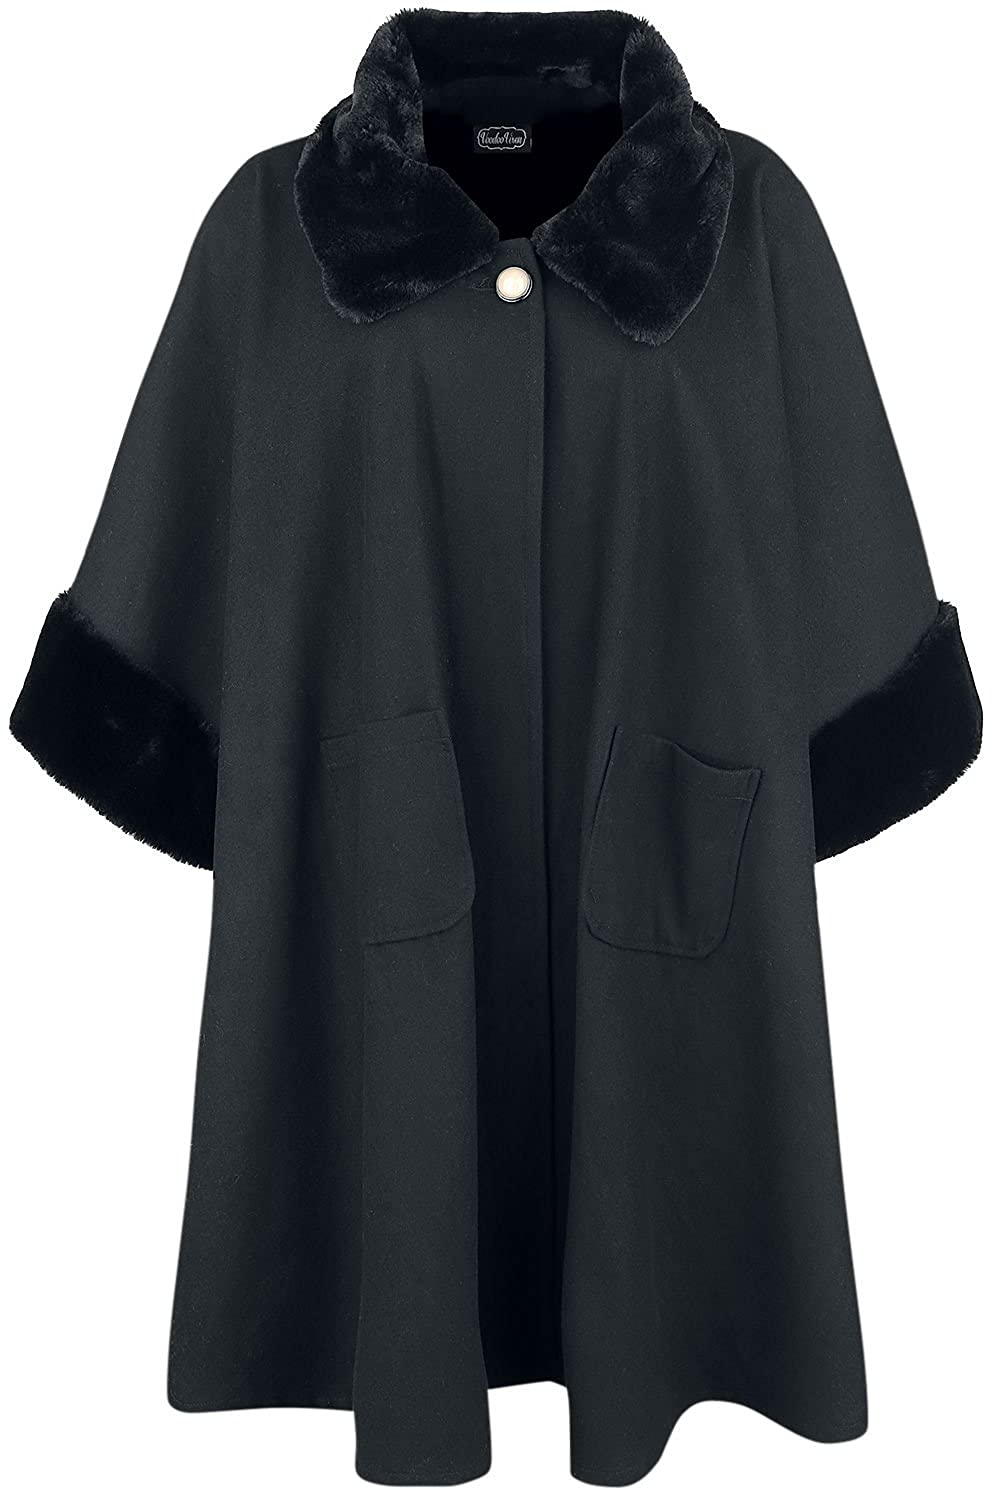 1950s Coats and Jackets History Voodoo Vixen Womens Melrose Faux Fur Cape (Black) $63.84 AT vintagedancer.com